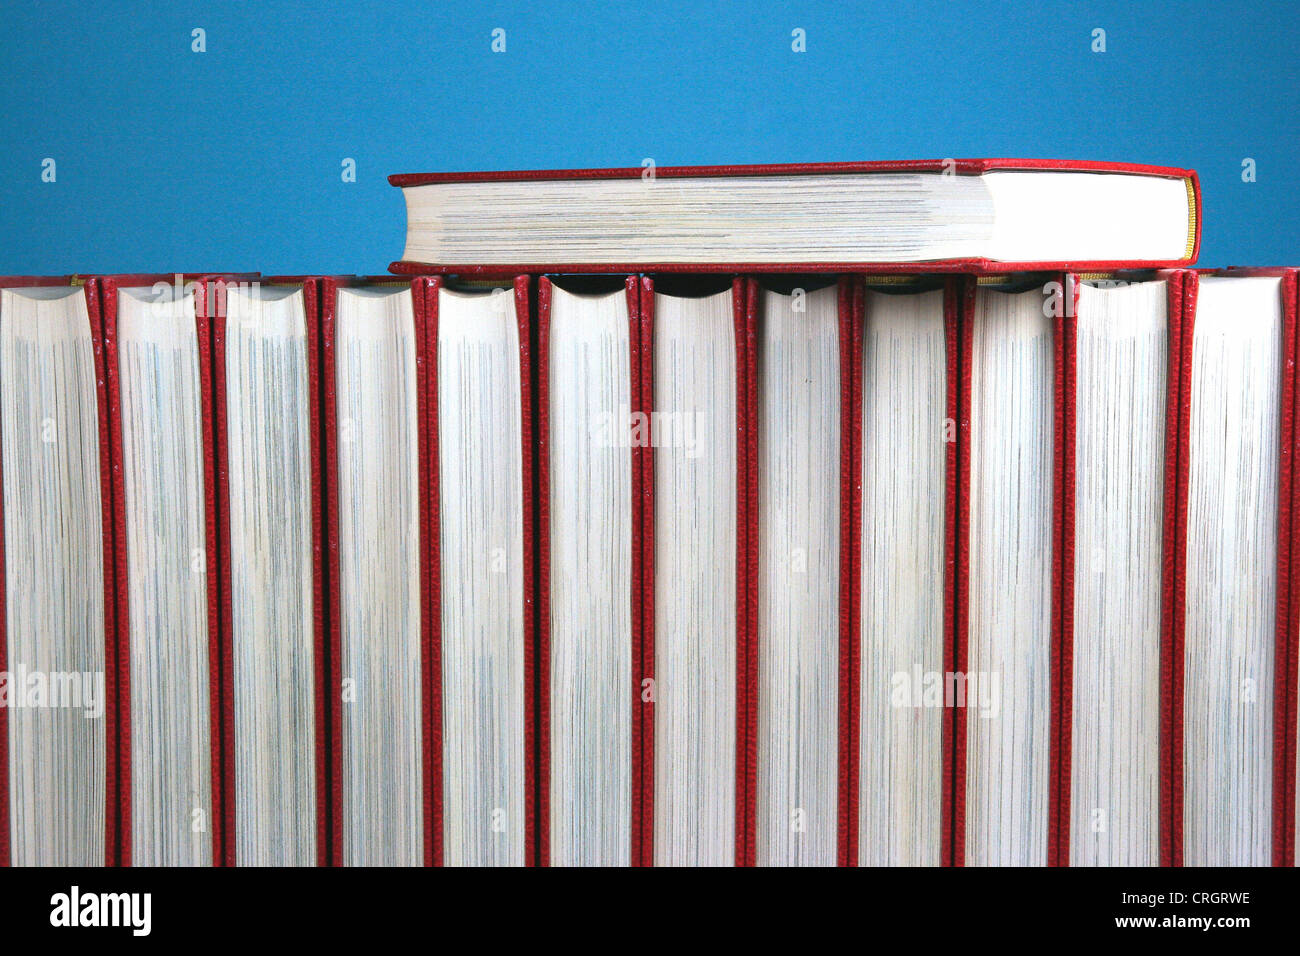 encyclopaedia in a row - Stock Image